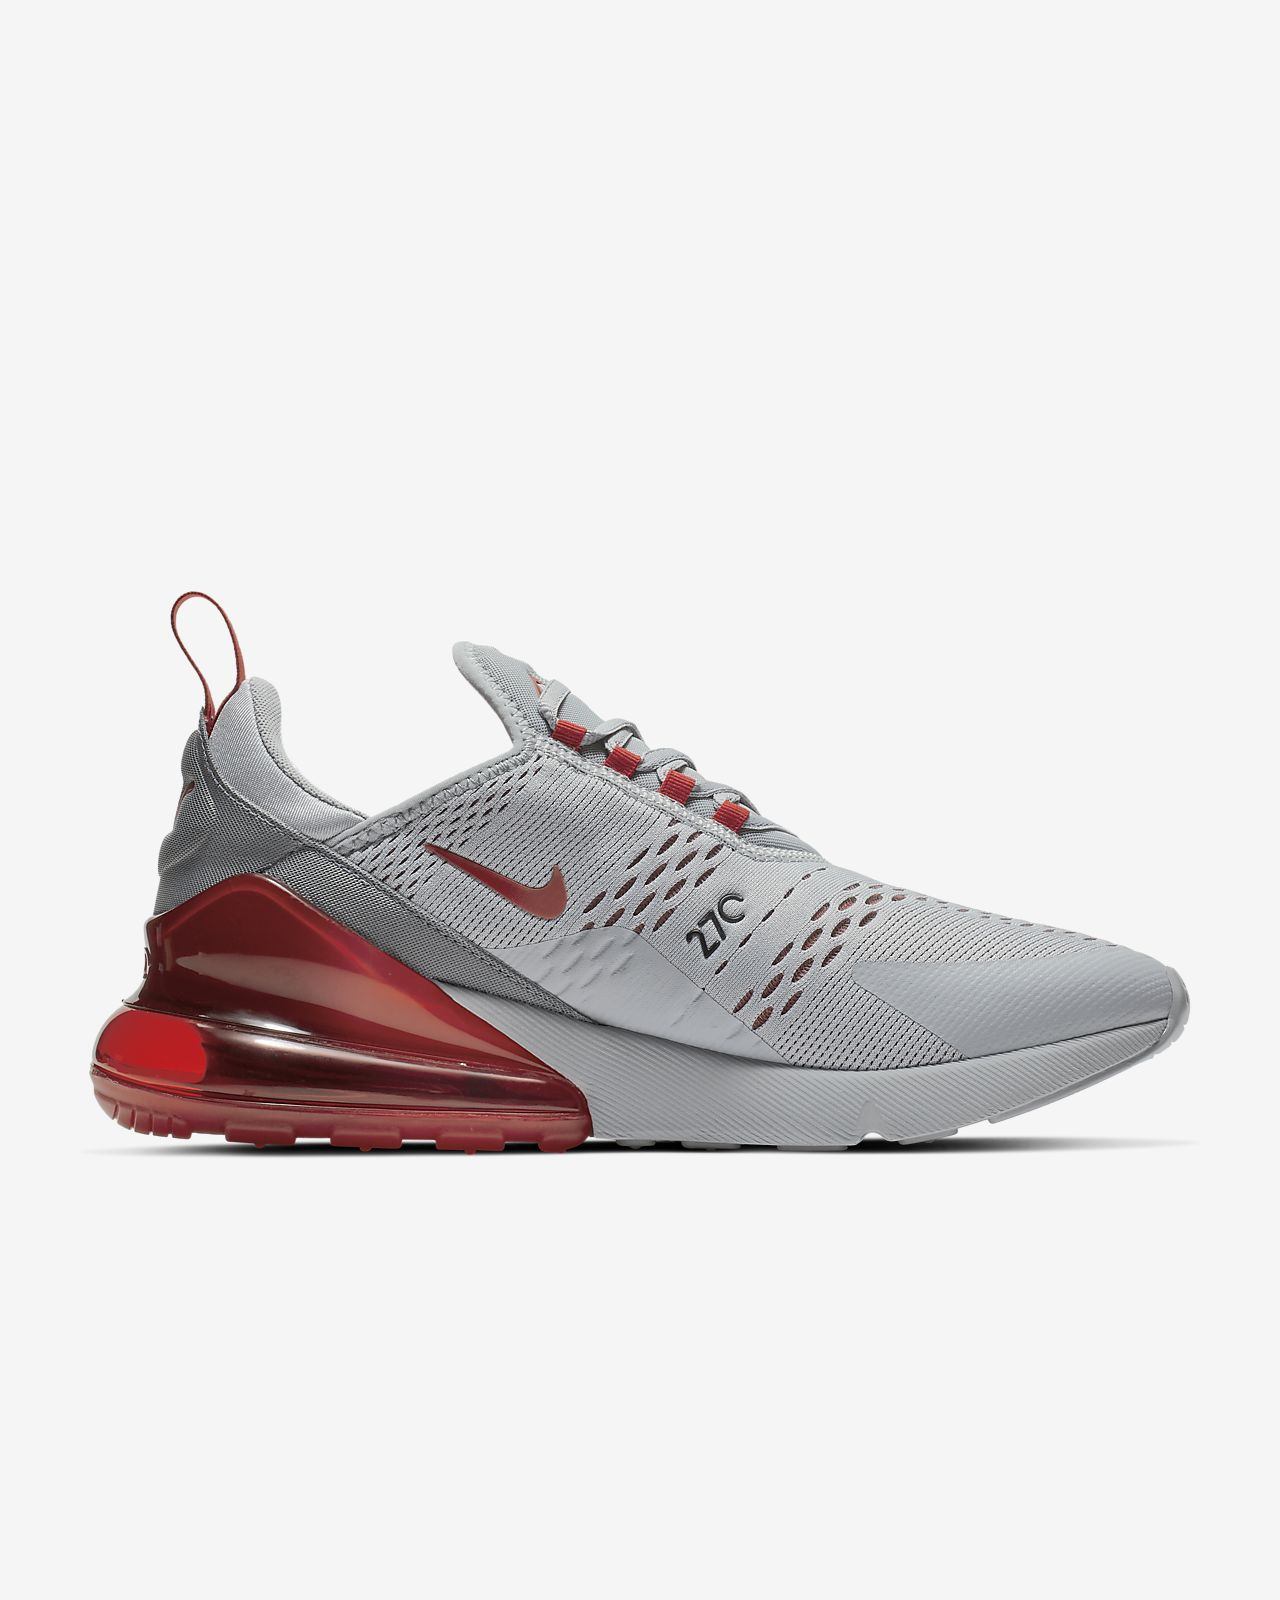 lowest price 4da28 fc256 ... Nike Air Max 270 Men s Shoe